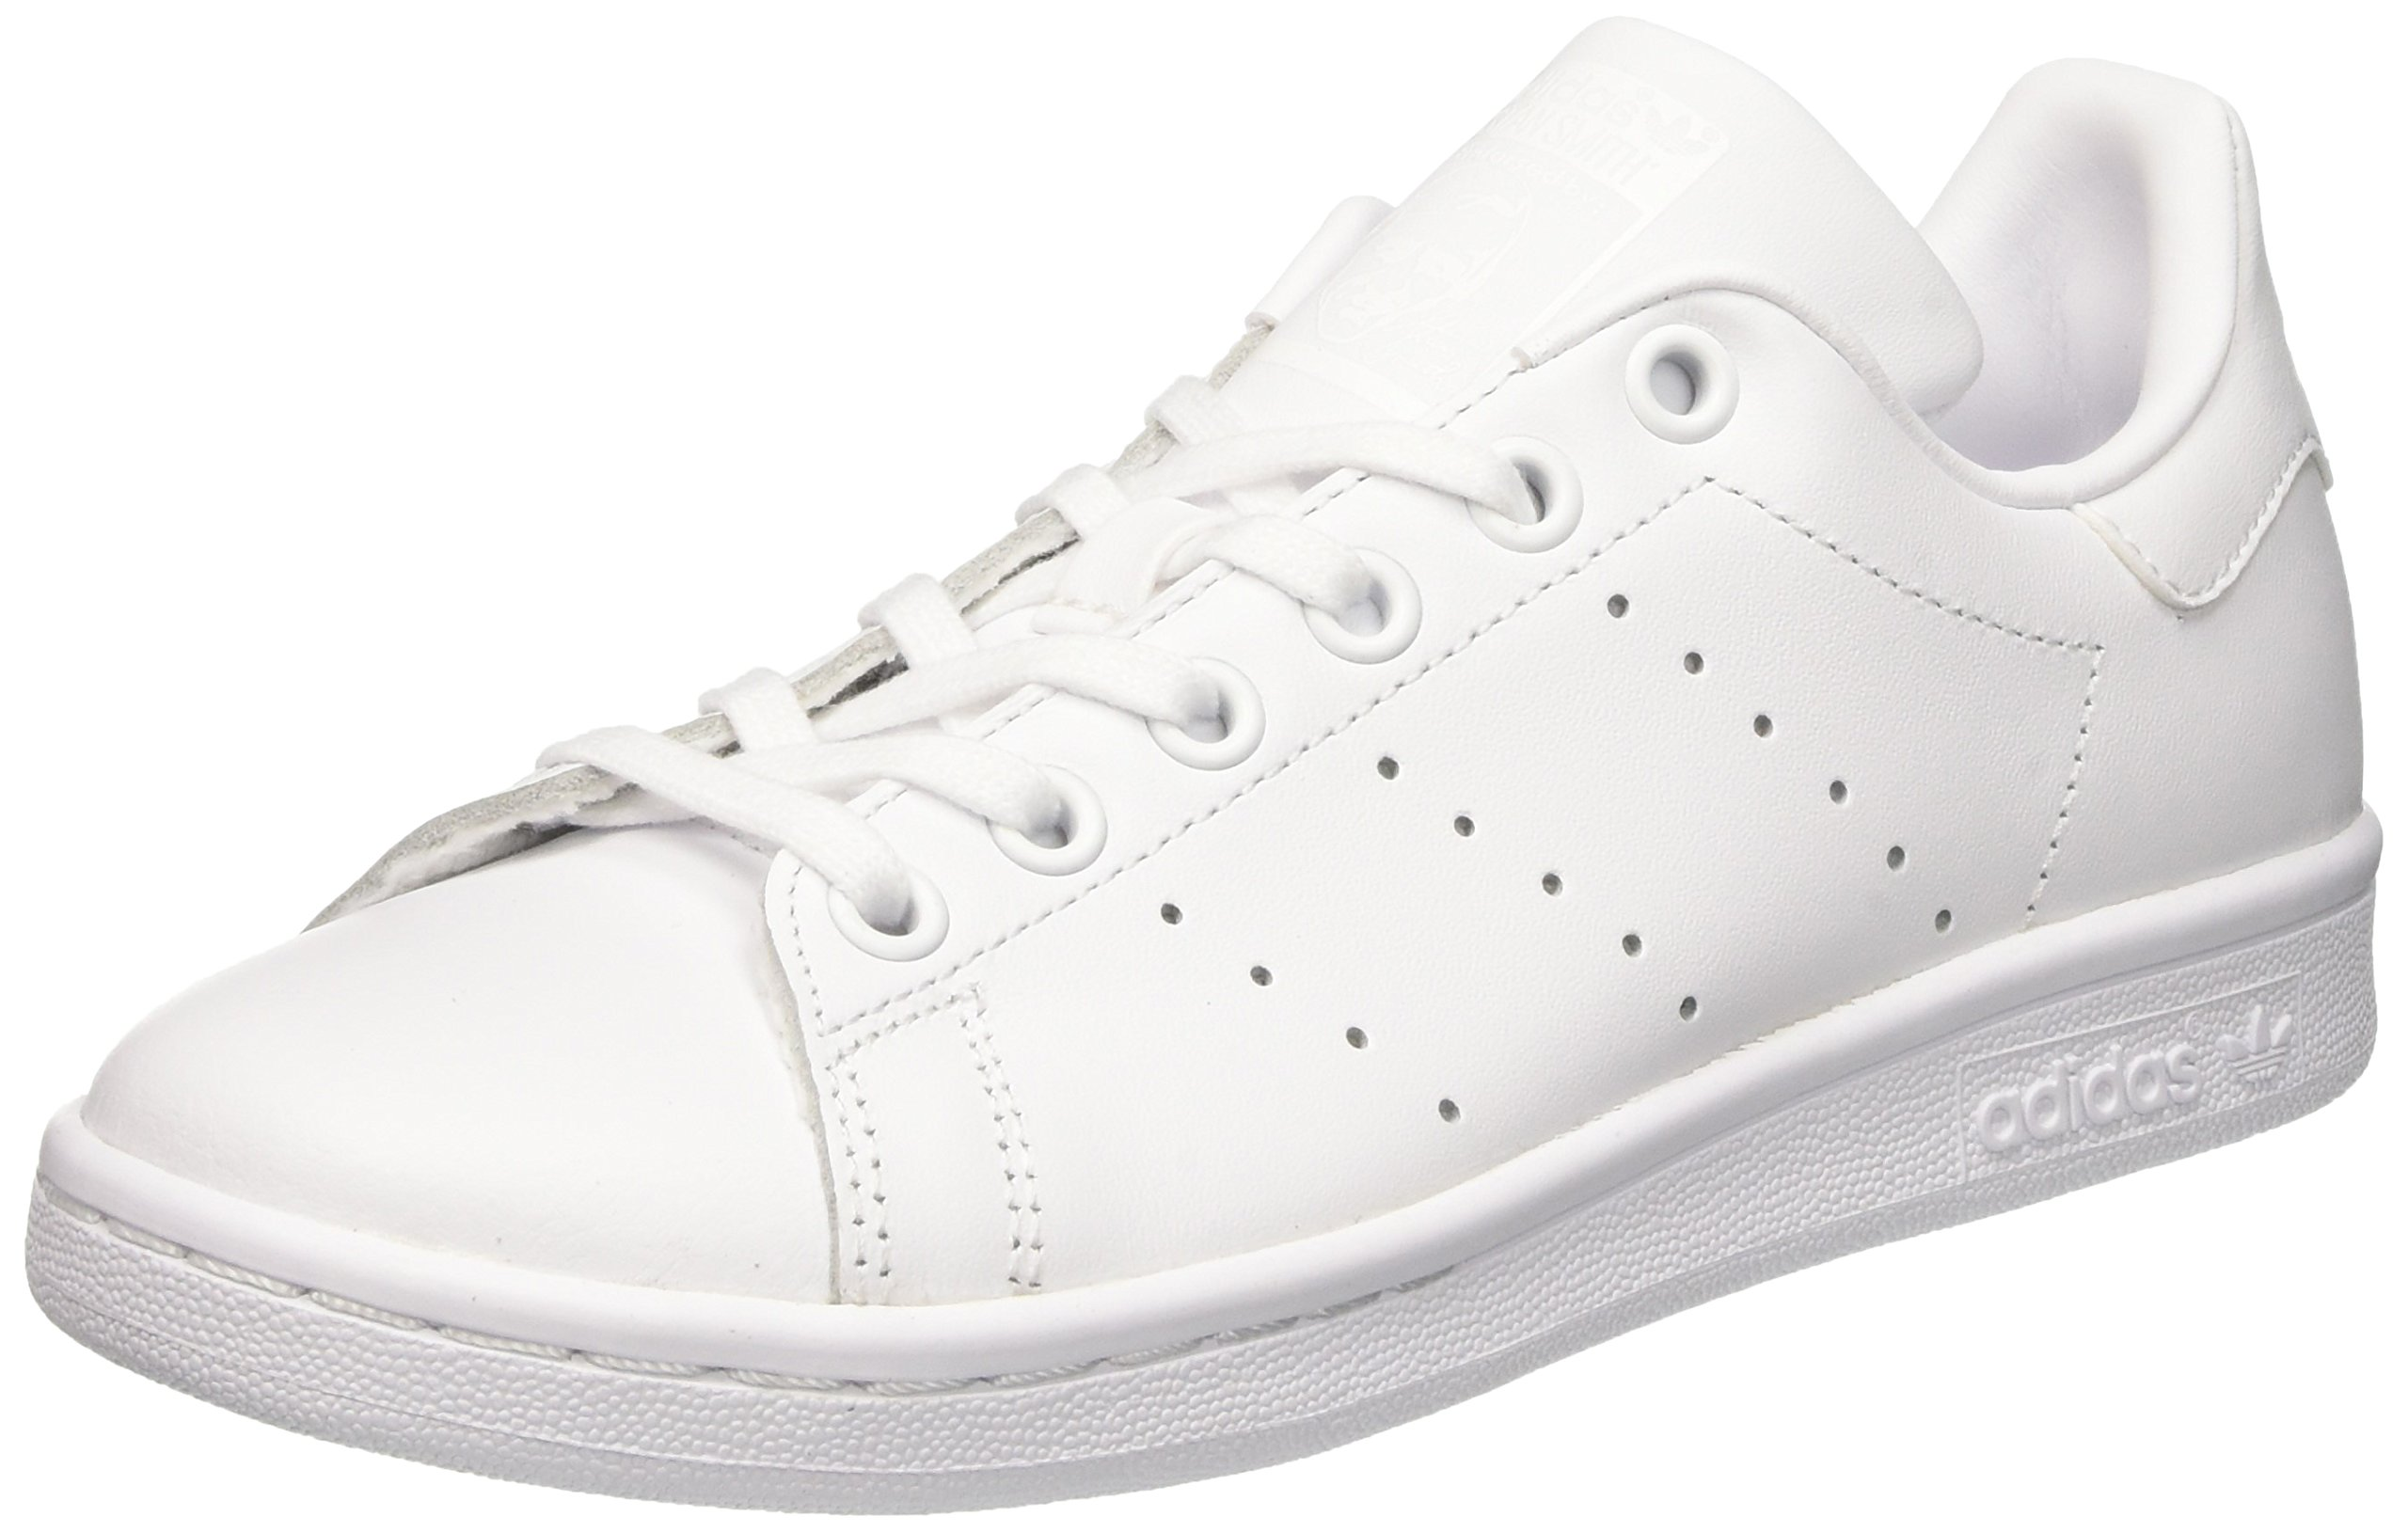 Adidas Youths Stan Smith White Leather Trainers 5.5 US by adidas